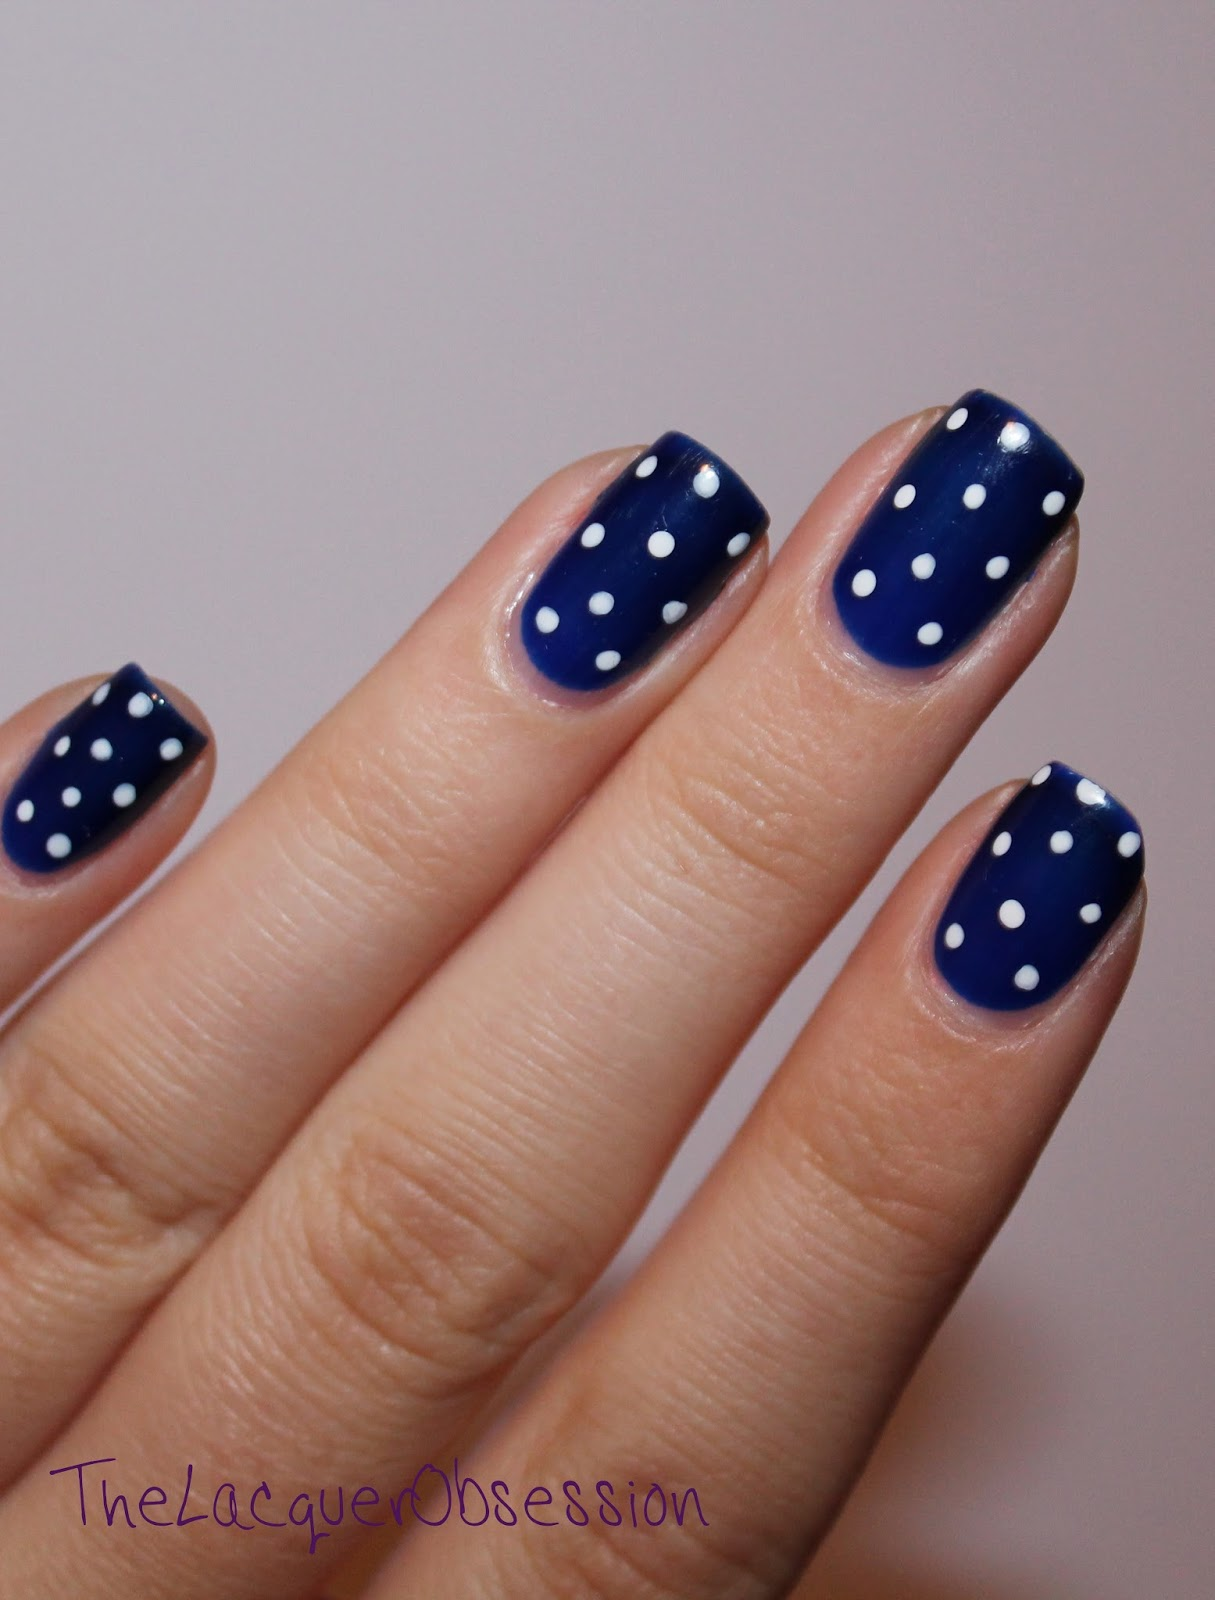 The Lacquer Obsession: Navy and White Polka Dots